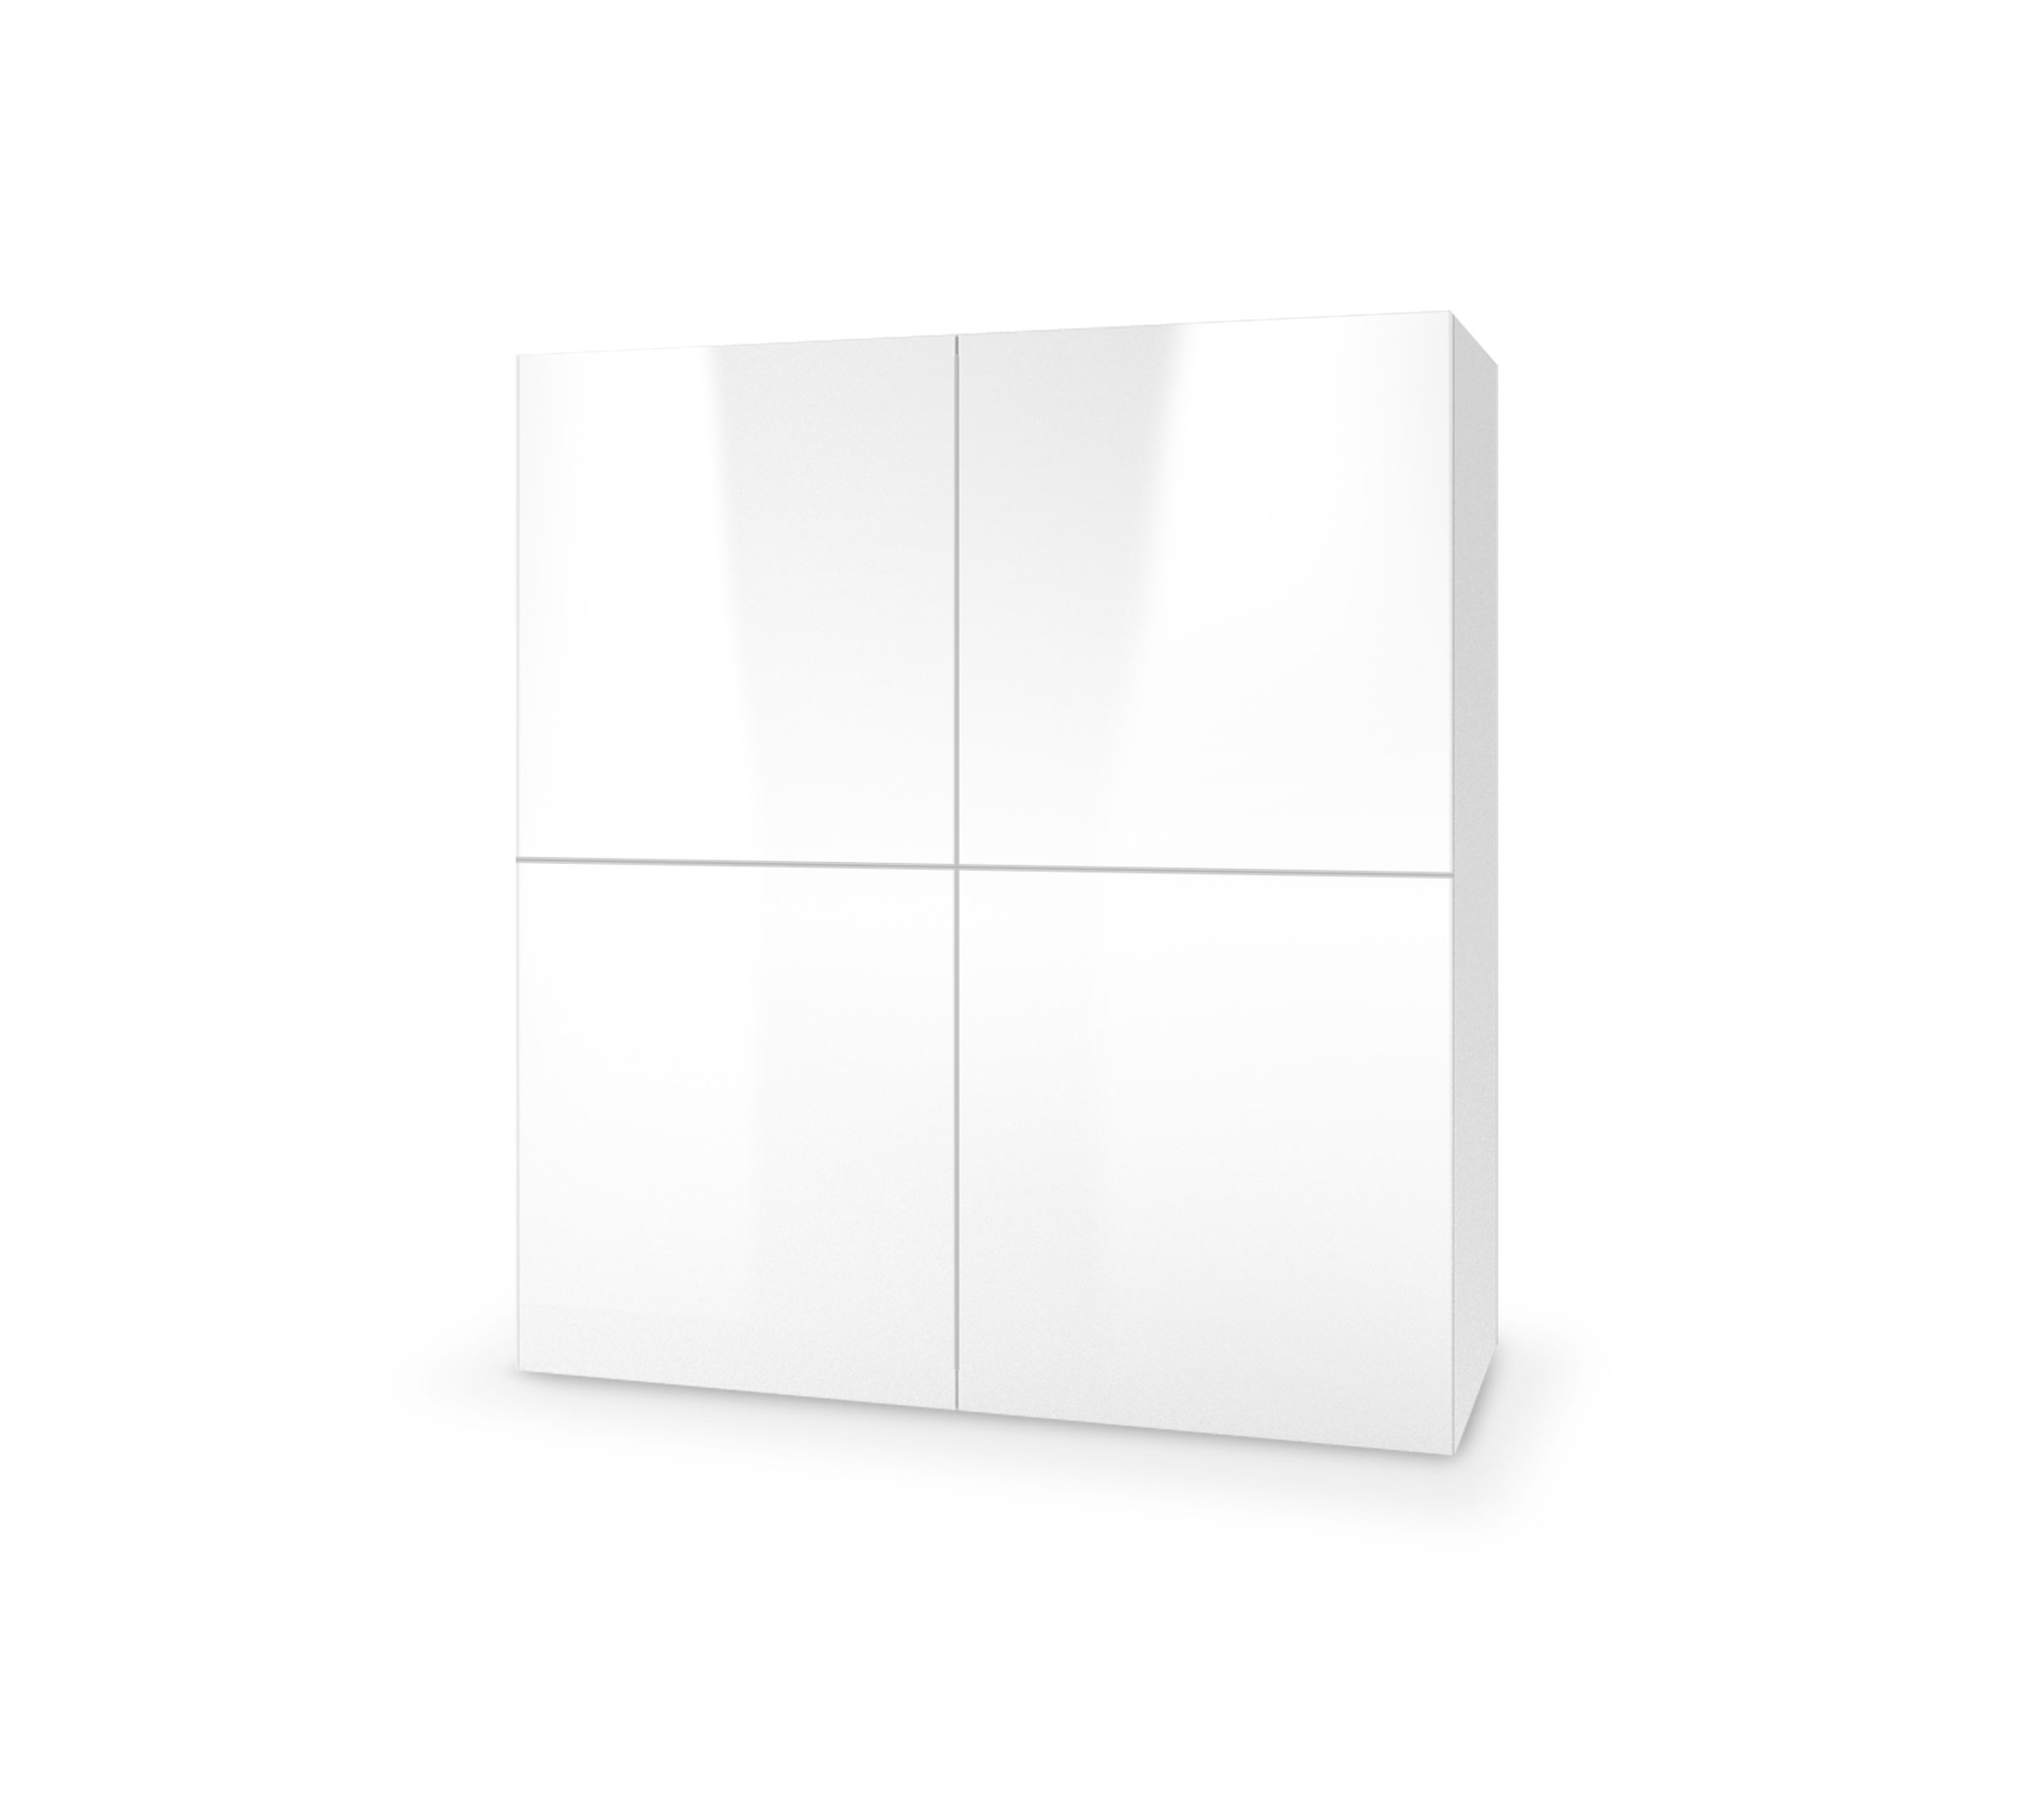 Dulap din MDF Livo KM-100 White, l100xA29xH100 cm imagine